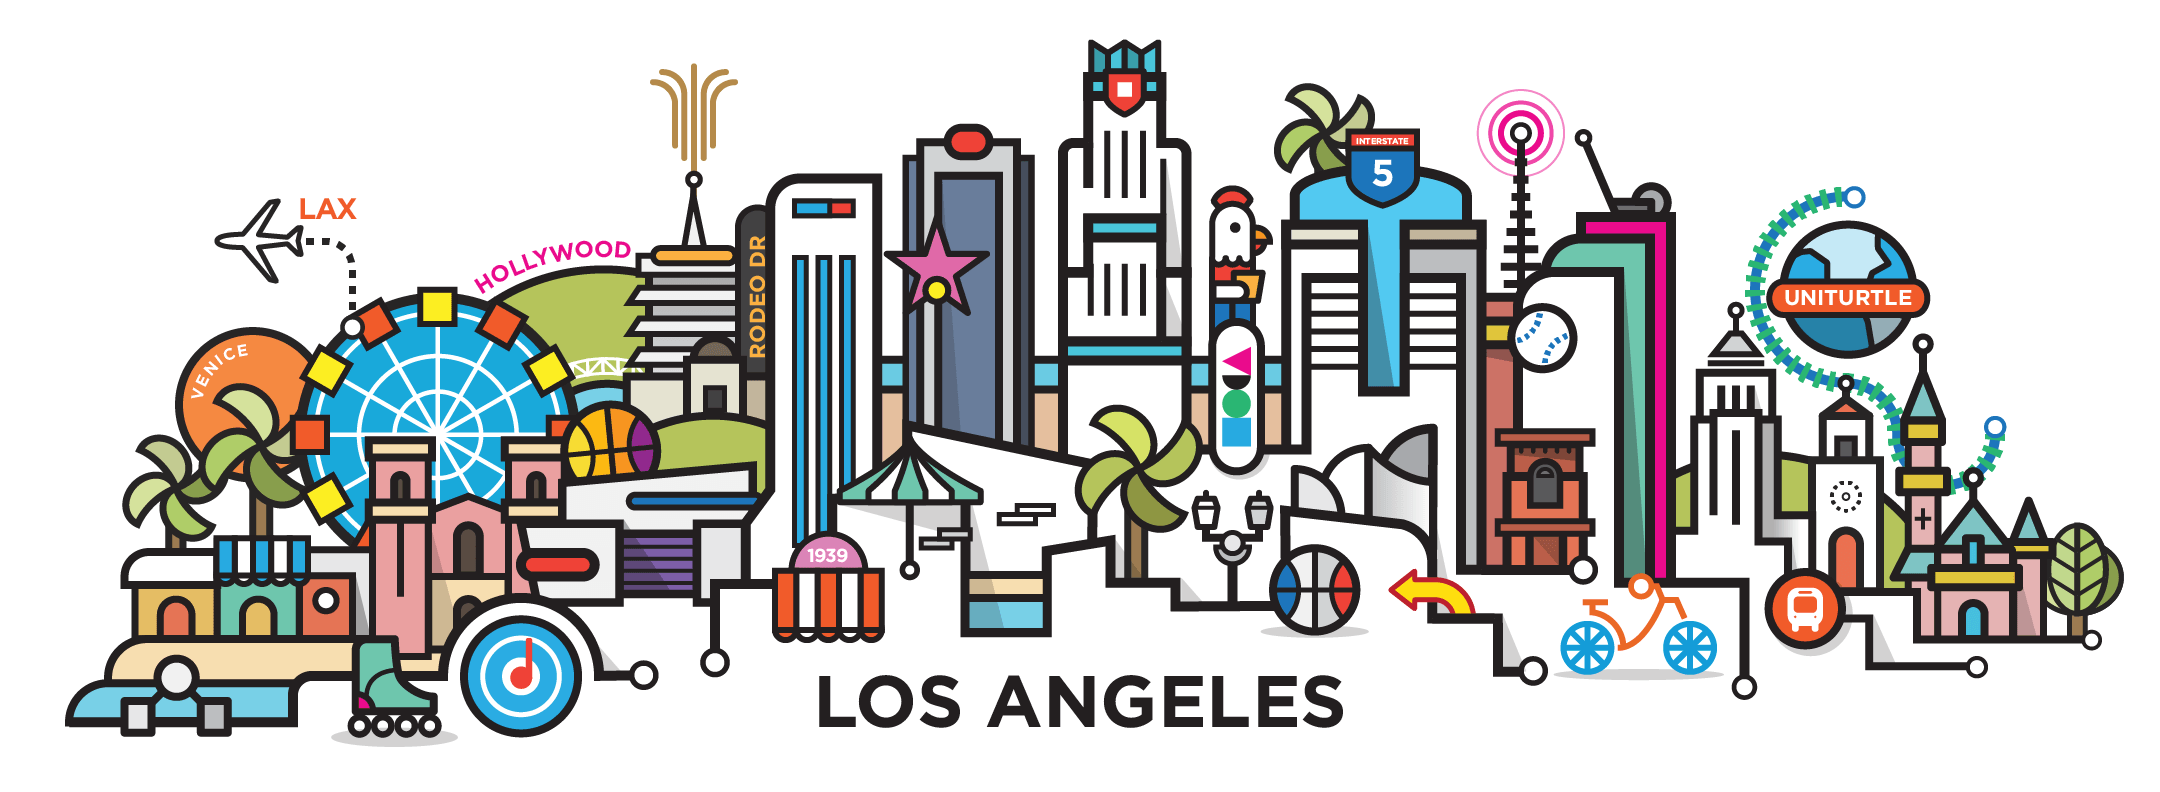 los-angeles-cityline-illustration-by-loogart